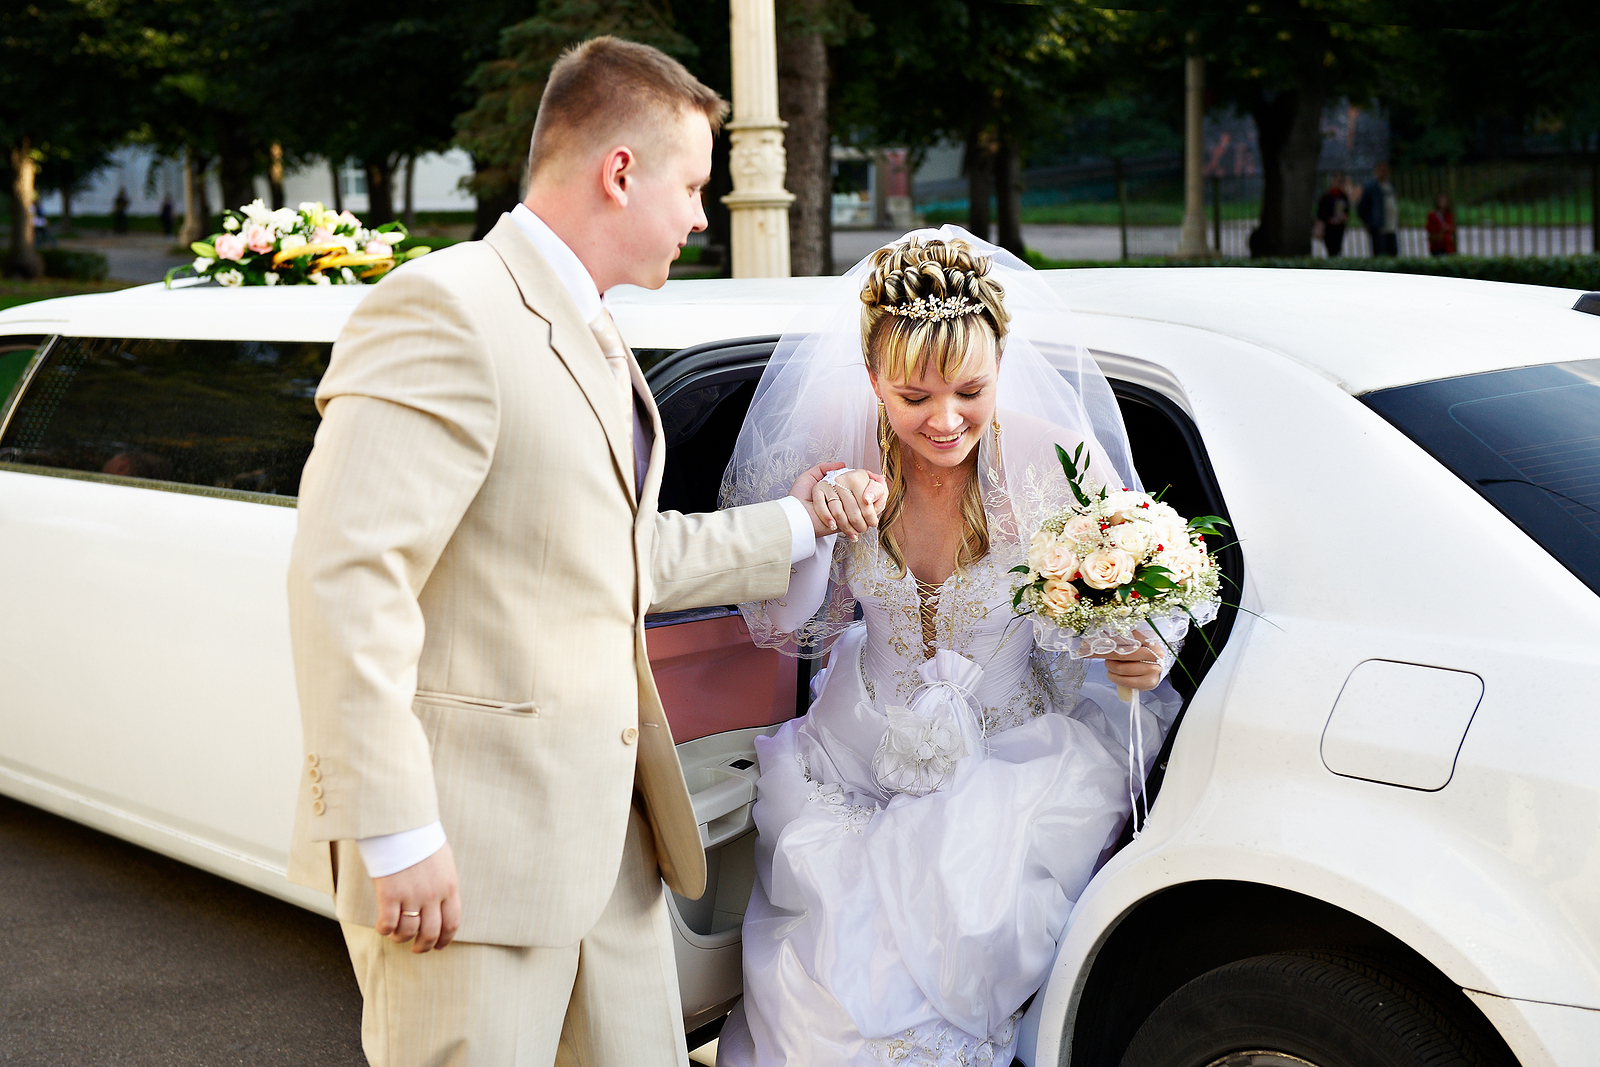 Win a Custom-Made Veil at Tradition Wedding Show - Eagle Luxury Transportation & Limousine Service